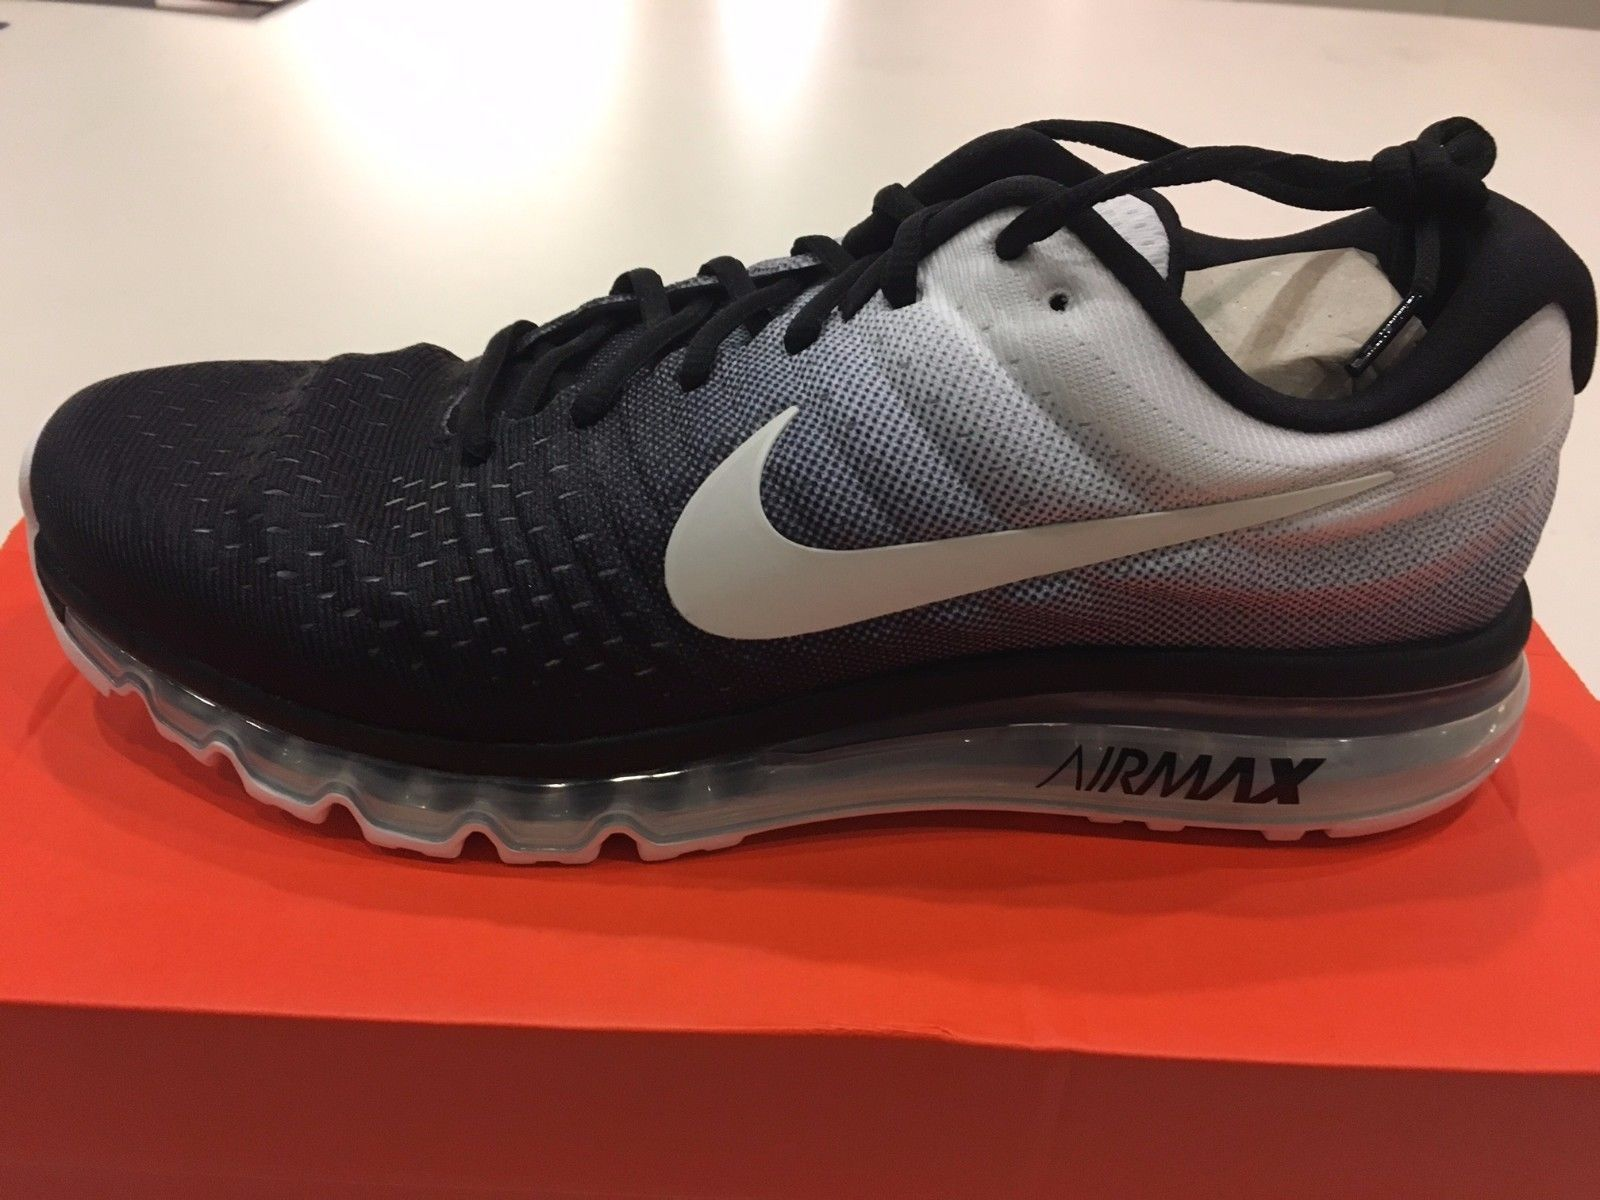 los angeles da86d ca303 ... switzerland nike air max 2017 new in box mens size 10.5 only 110.00  with free shipping